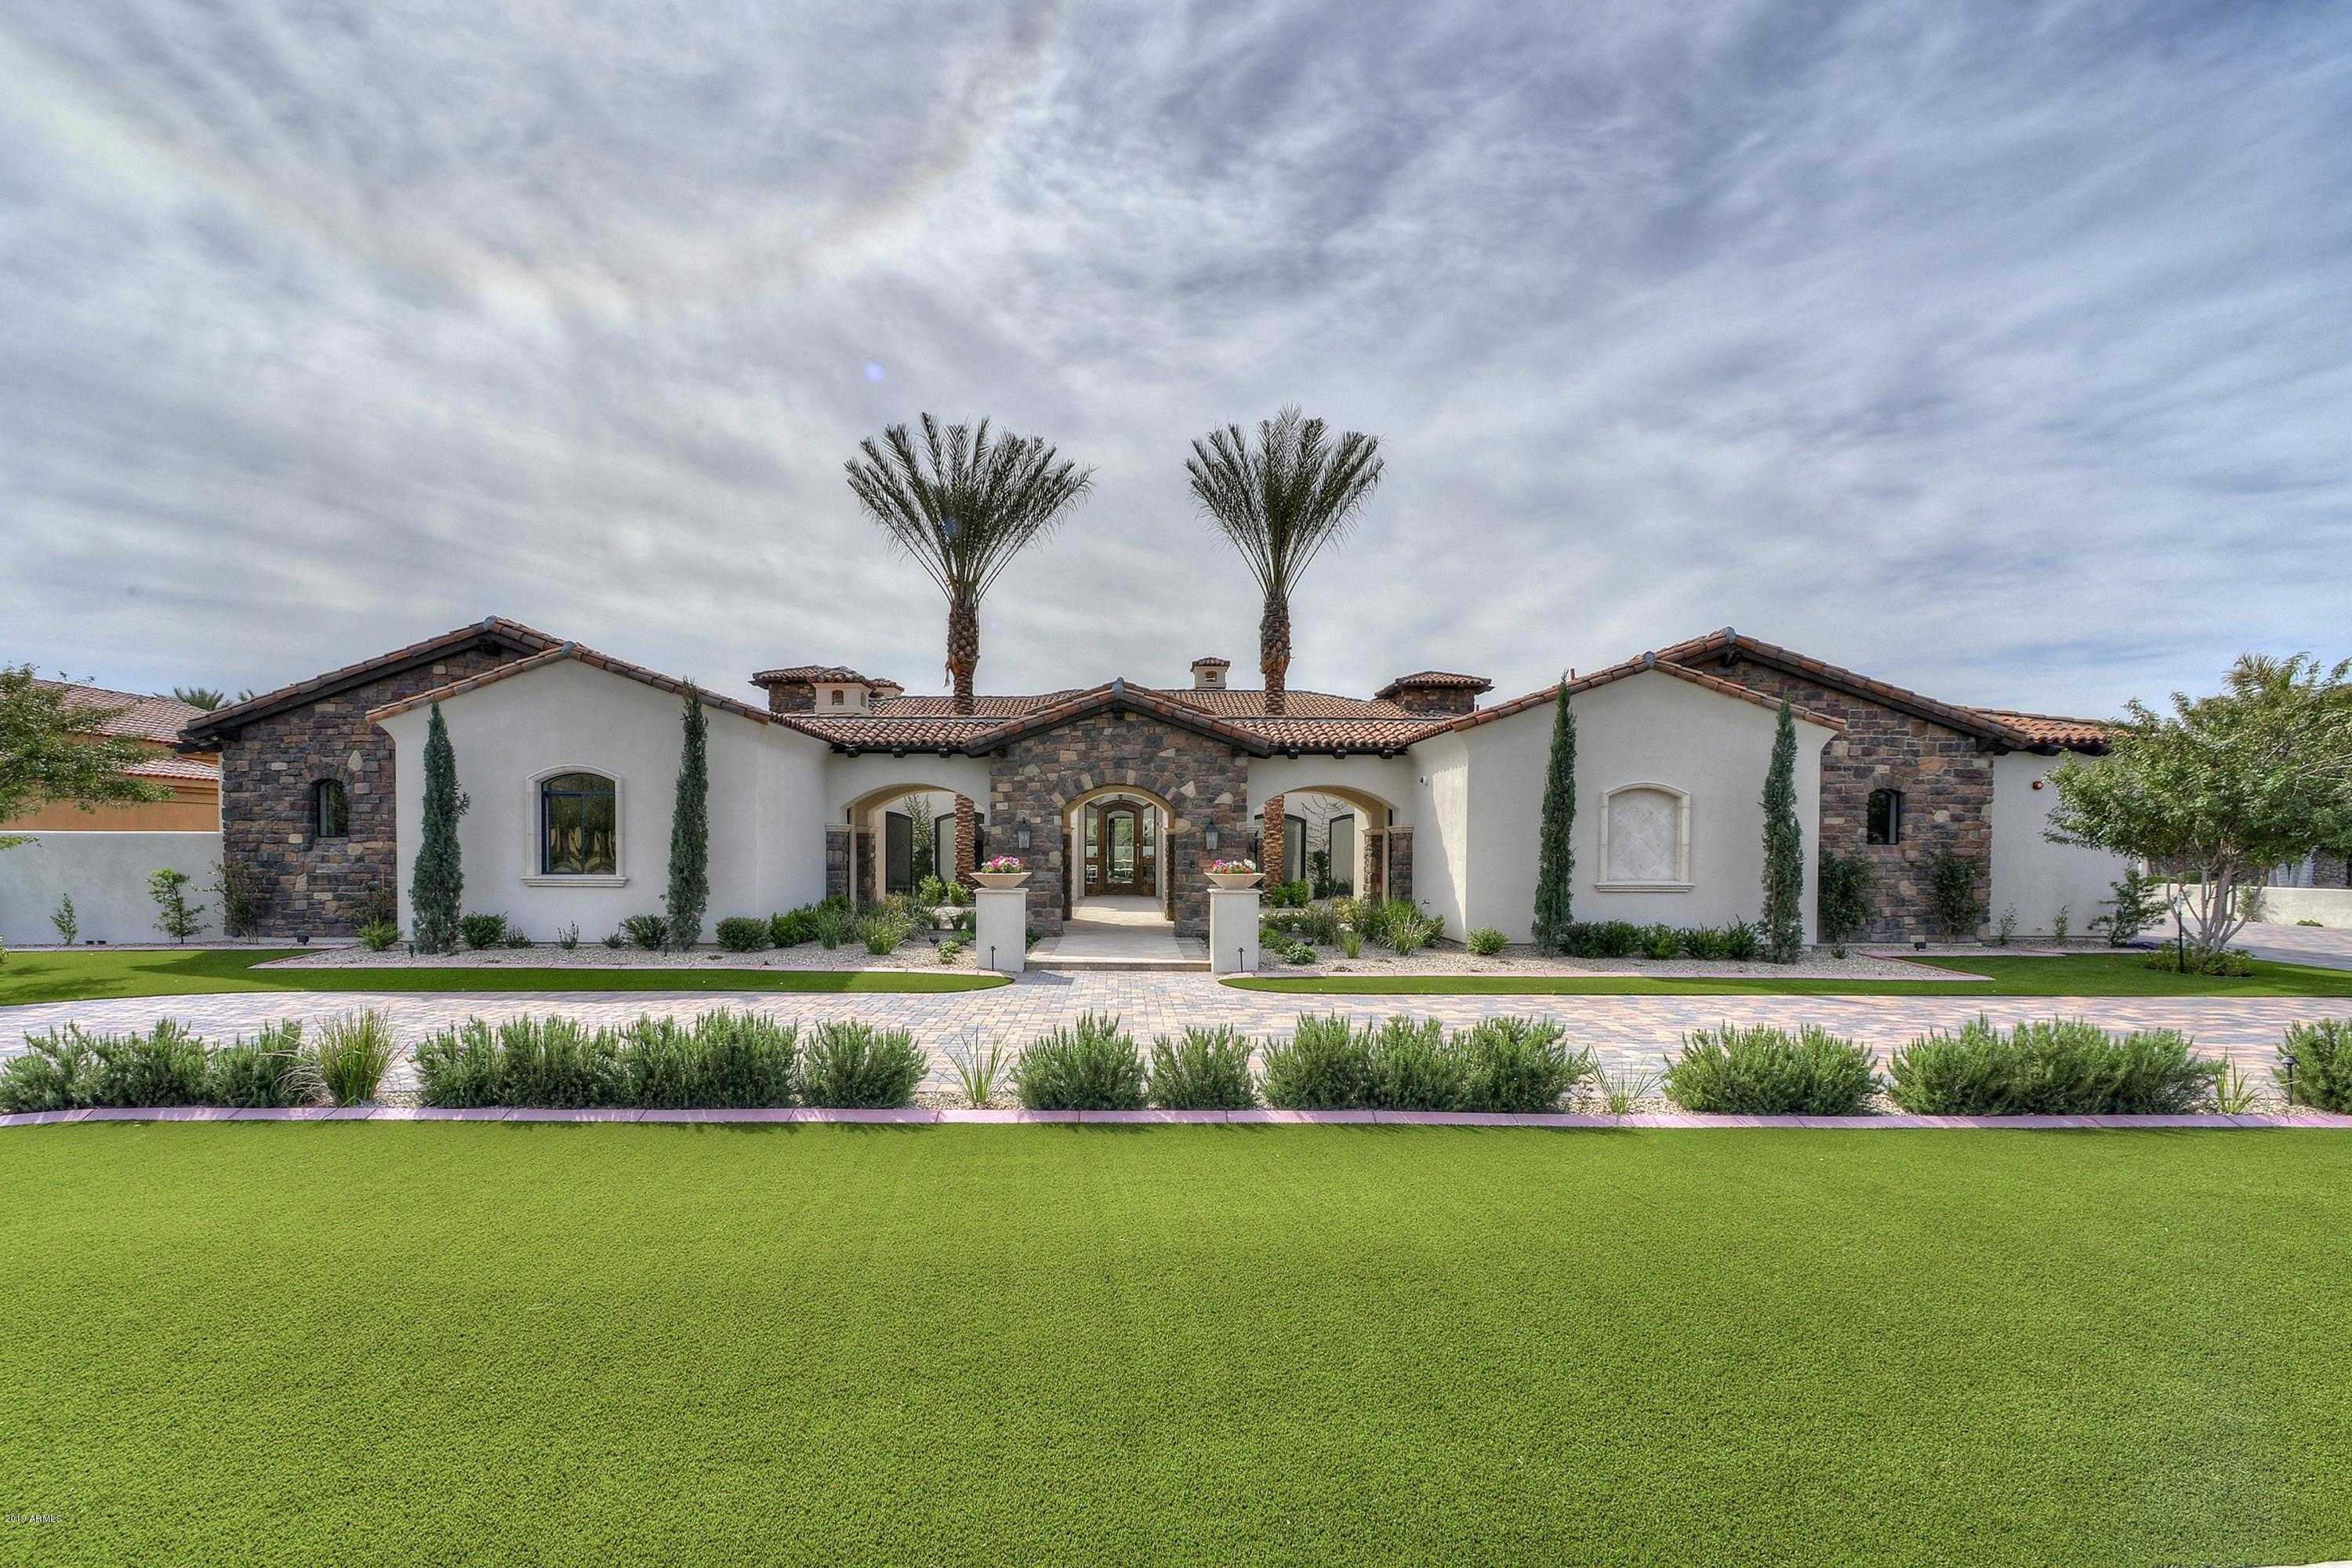 $3,295,000 - 6Br/8Ba - Home for Sale in Casa De Sunrise, Peoria